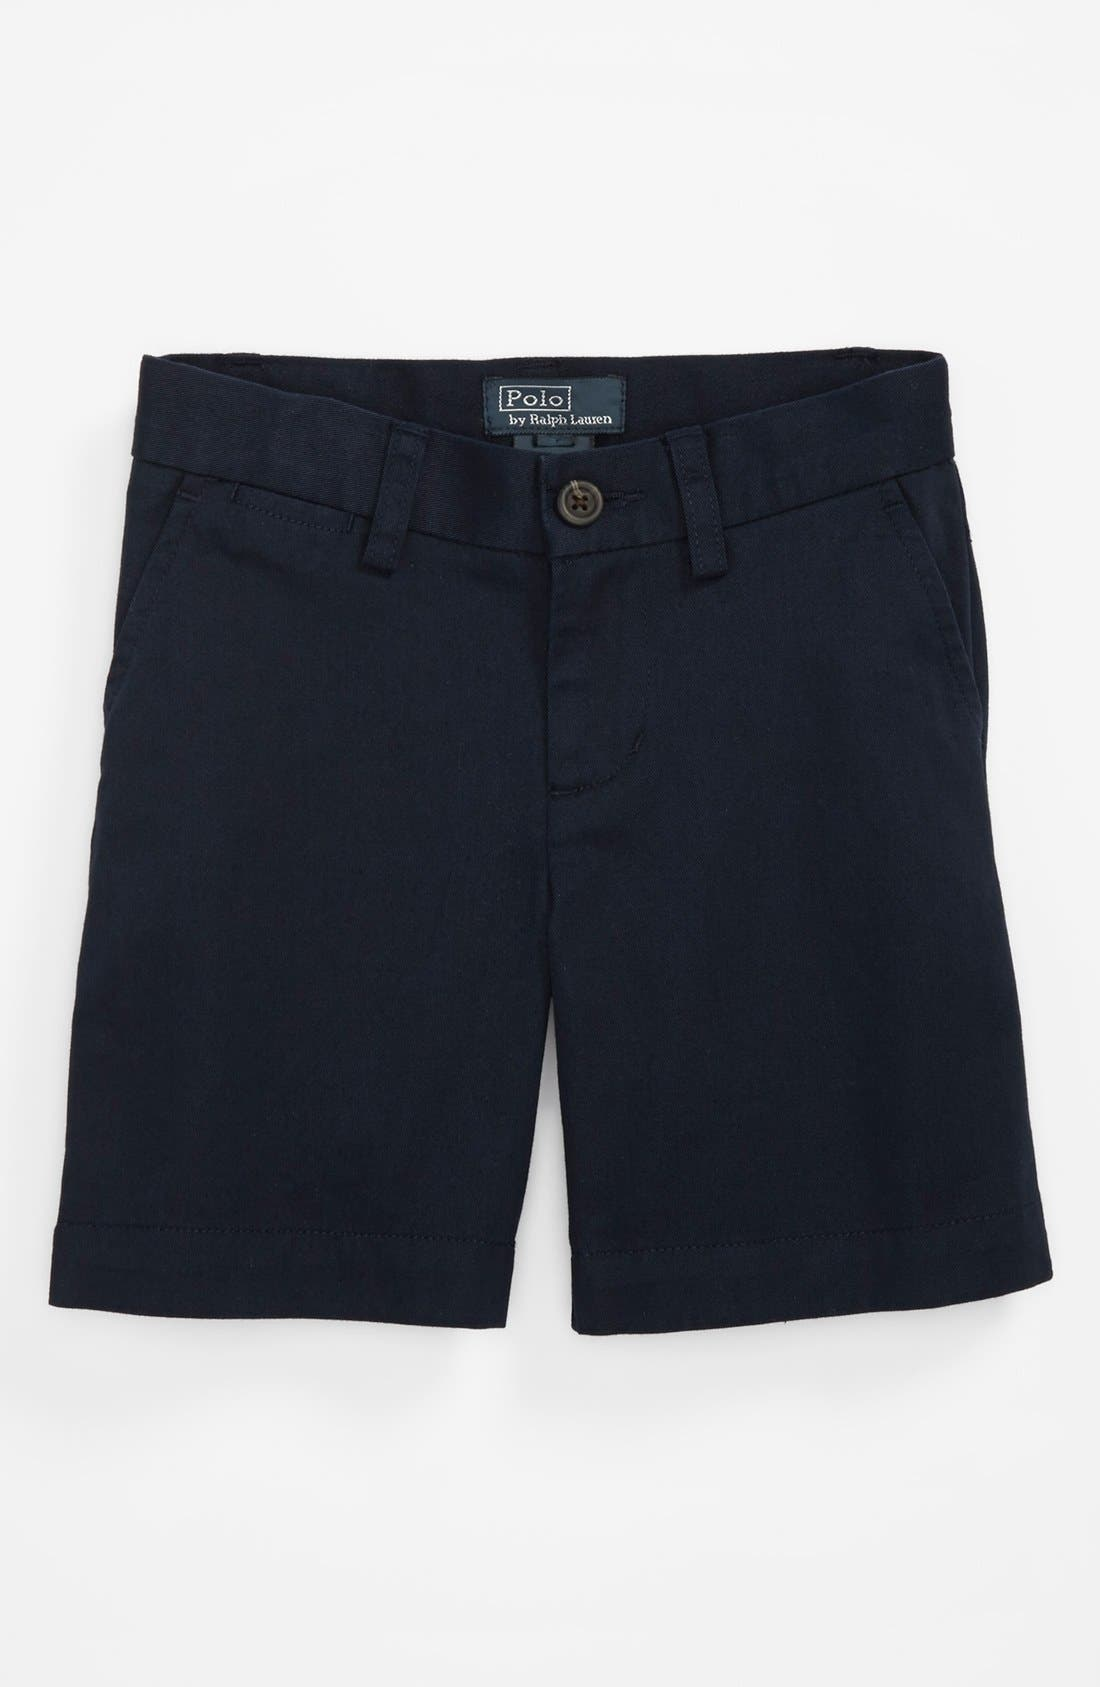 Main Image - Ralph Lauren 'Prospect' Shorts (Toddler Boys)